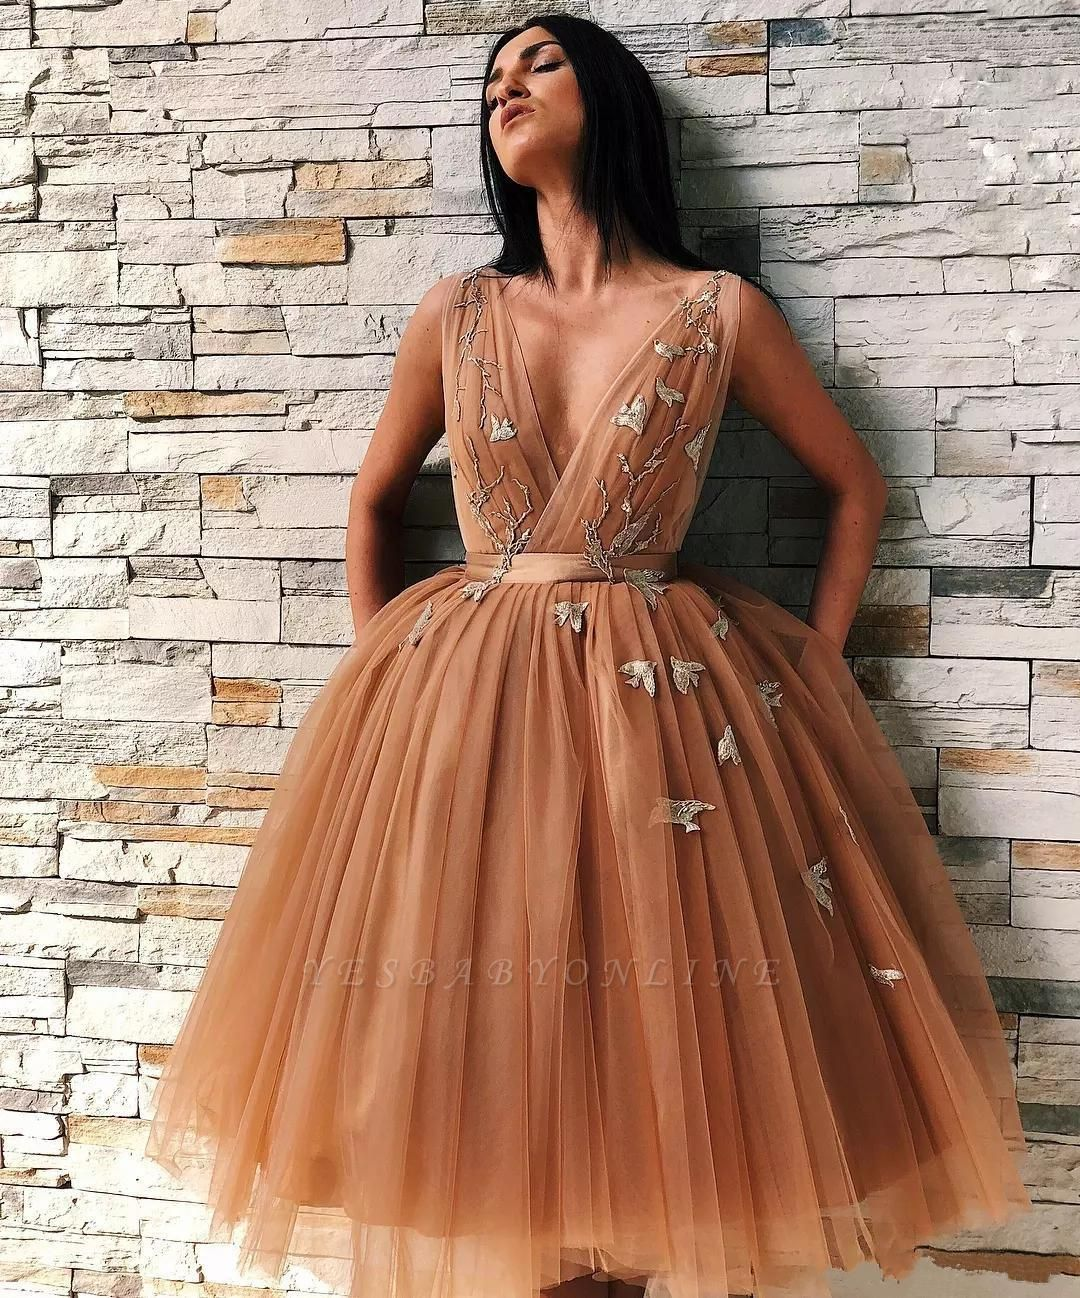 Champagne Straps V-neck Flower Ruffles A-line Short Homecoming Dresses | Backless Graduation Dresses